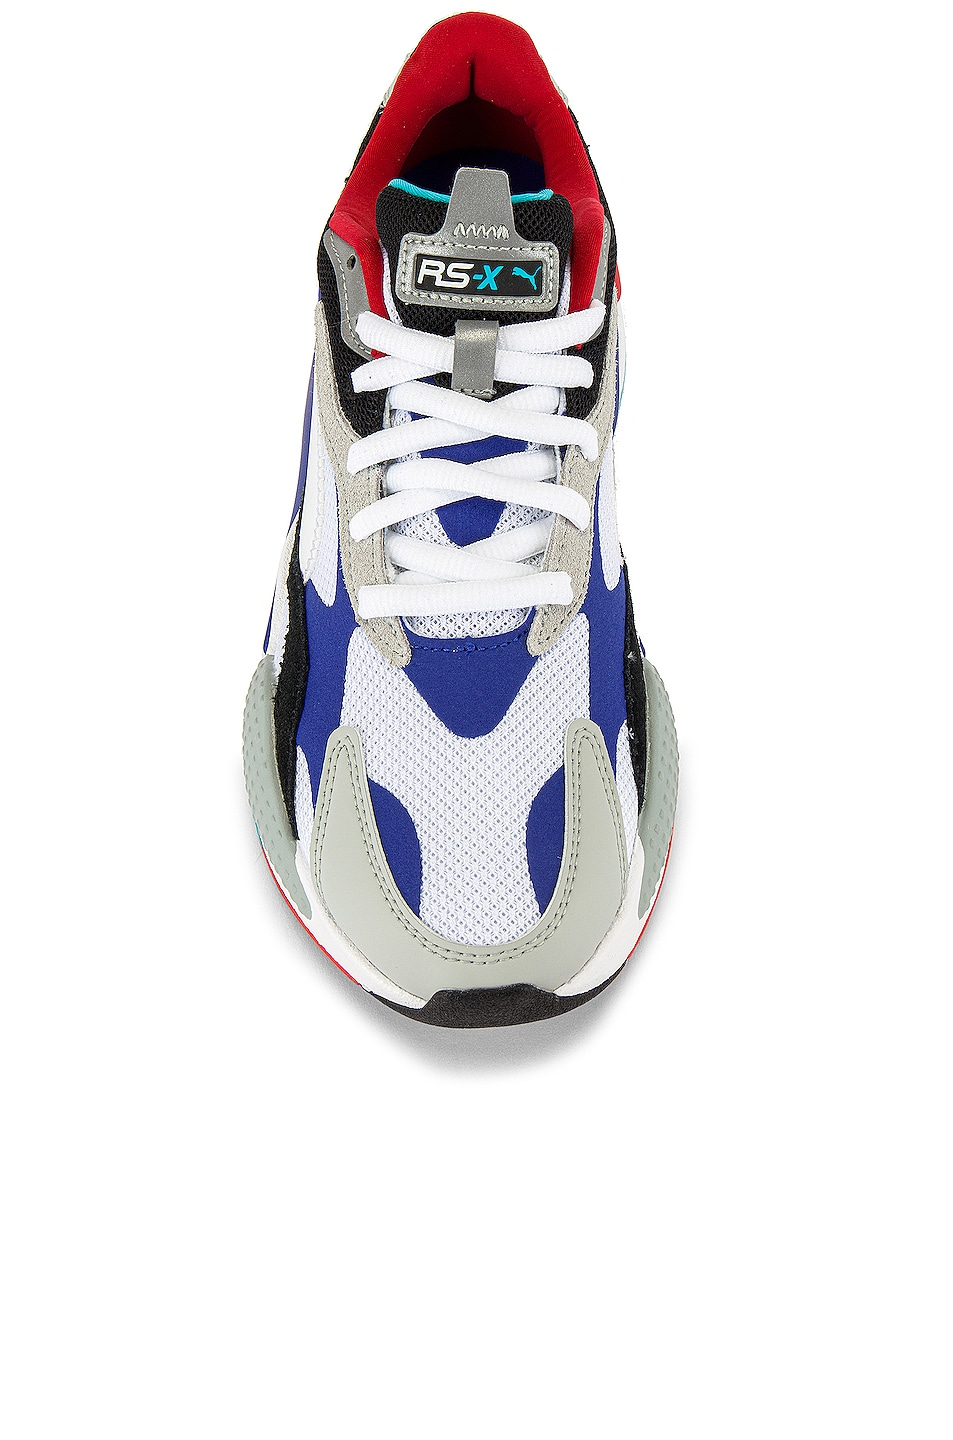 Image 4 of Puma Select RSX Cube RS-X3 Puzzle in Puma White & Dazzling Blue